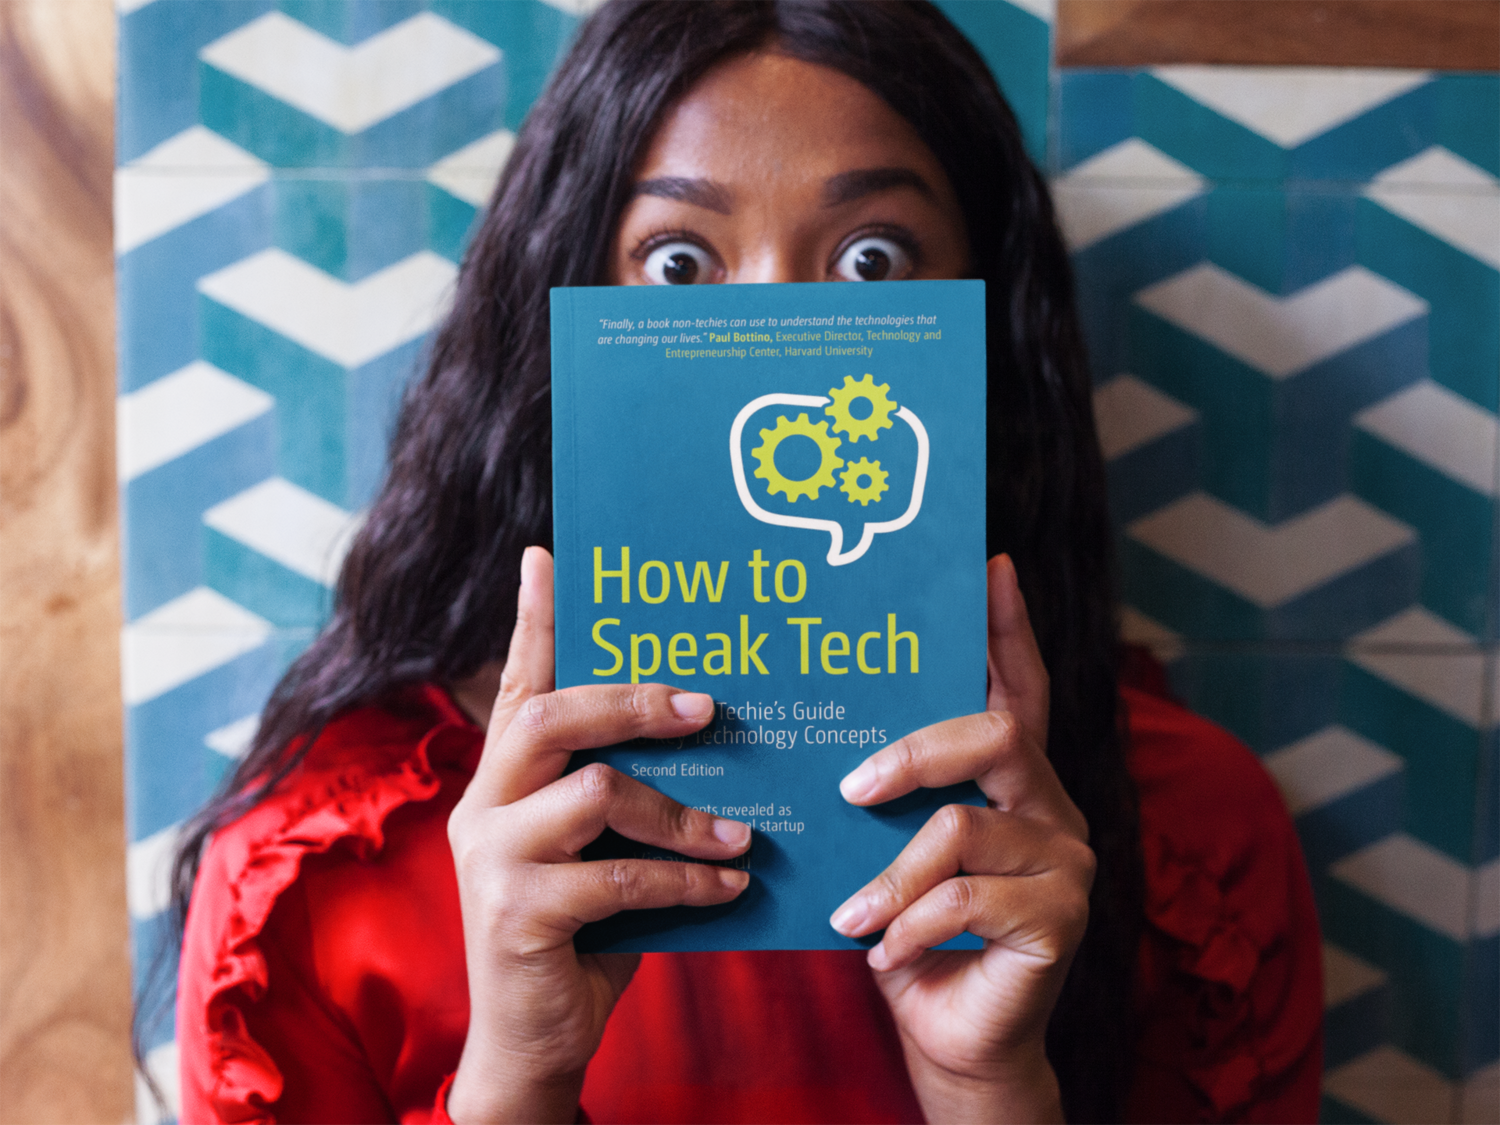 A Harvard University Guide To Executive >> How To Speak Tech